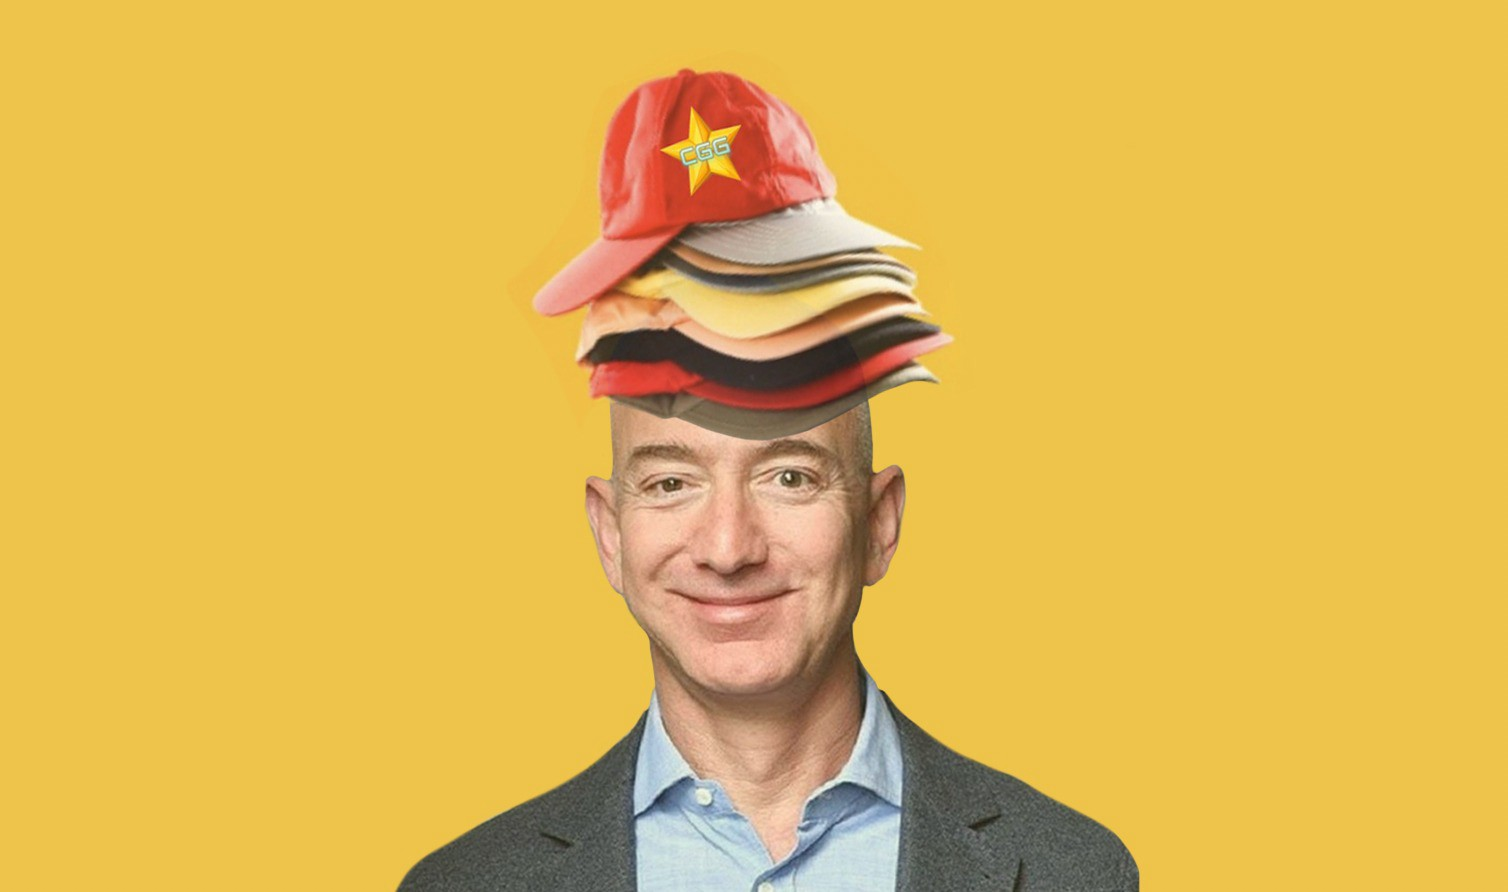 jeff bezos wearing multiple hats